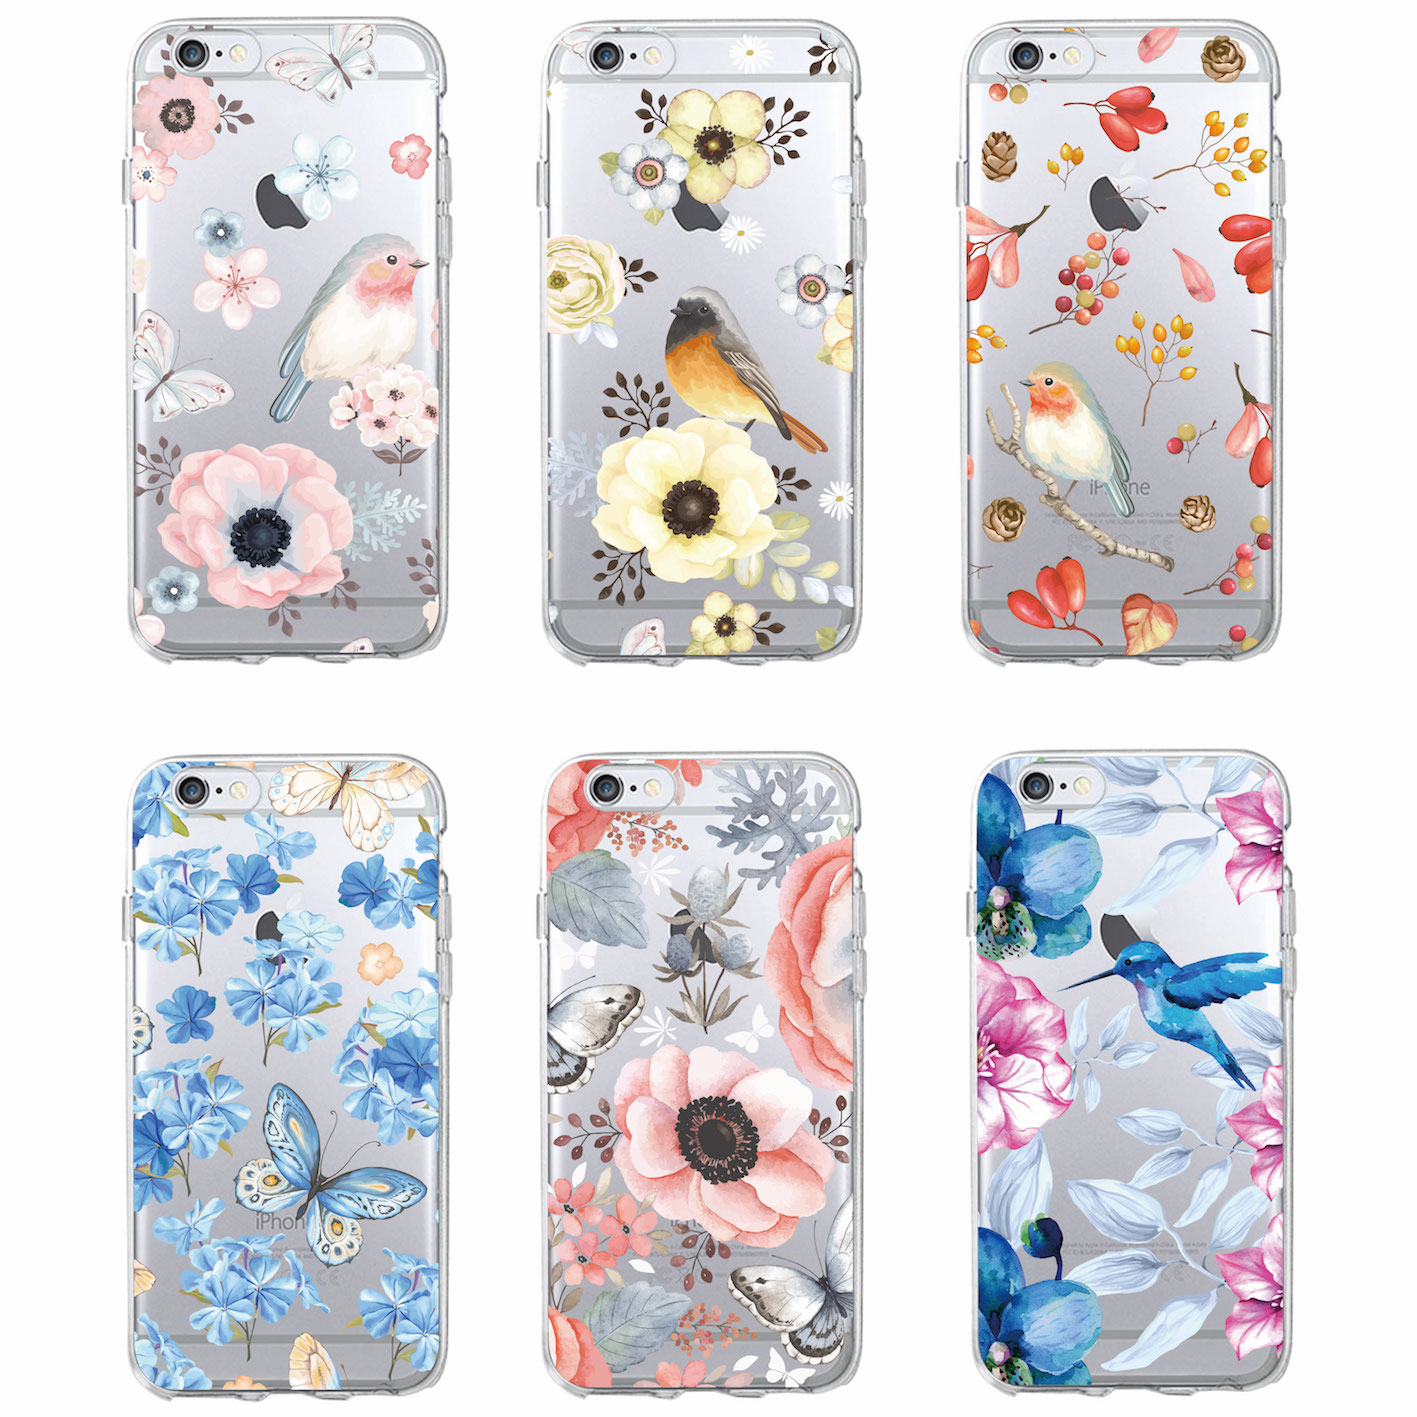 buy online c6627 9586f Cute Bird Butterfly Floral Flower Soft Clear Phone Case For Samsung Galaxy  J5 A5 A8 S7 Edge S8 S9 Plus Iphone 6 6S 7 8 Plus X XS Max